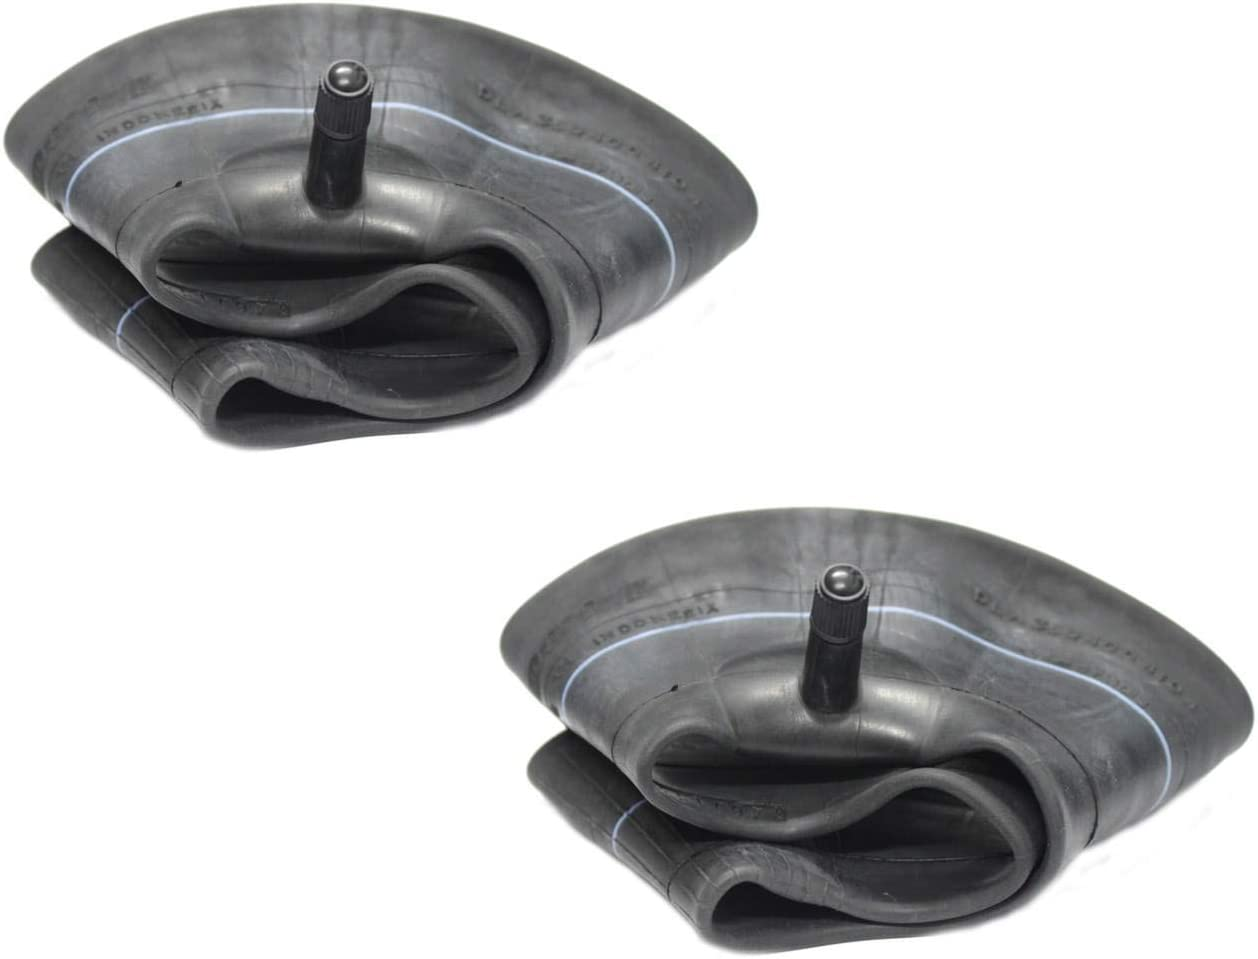 15x6.00-6 Air Loc Brand Set of 2 Tire Inner Tubes with TR13 Rubber Valve Stems 15x6.00-6